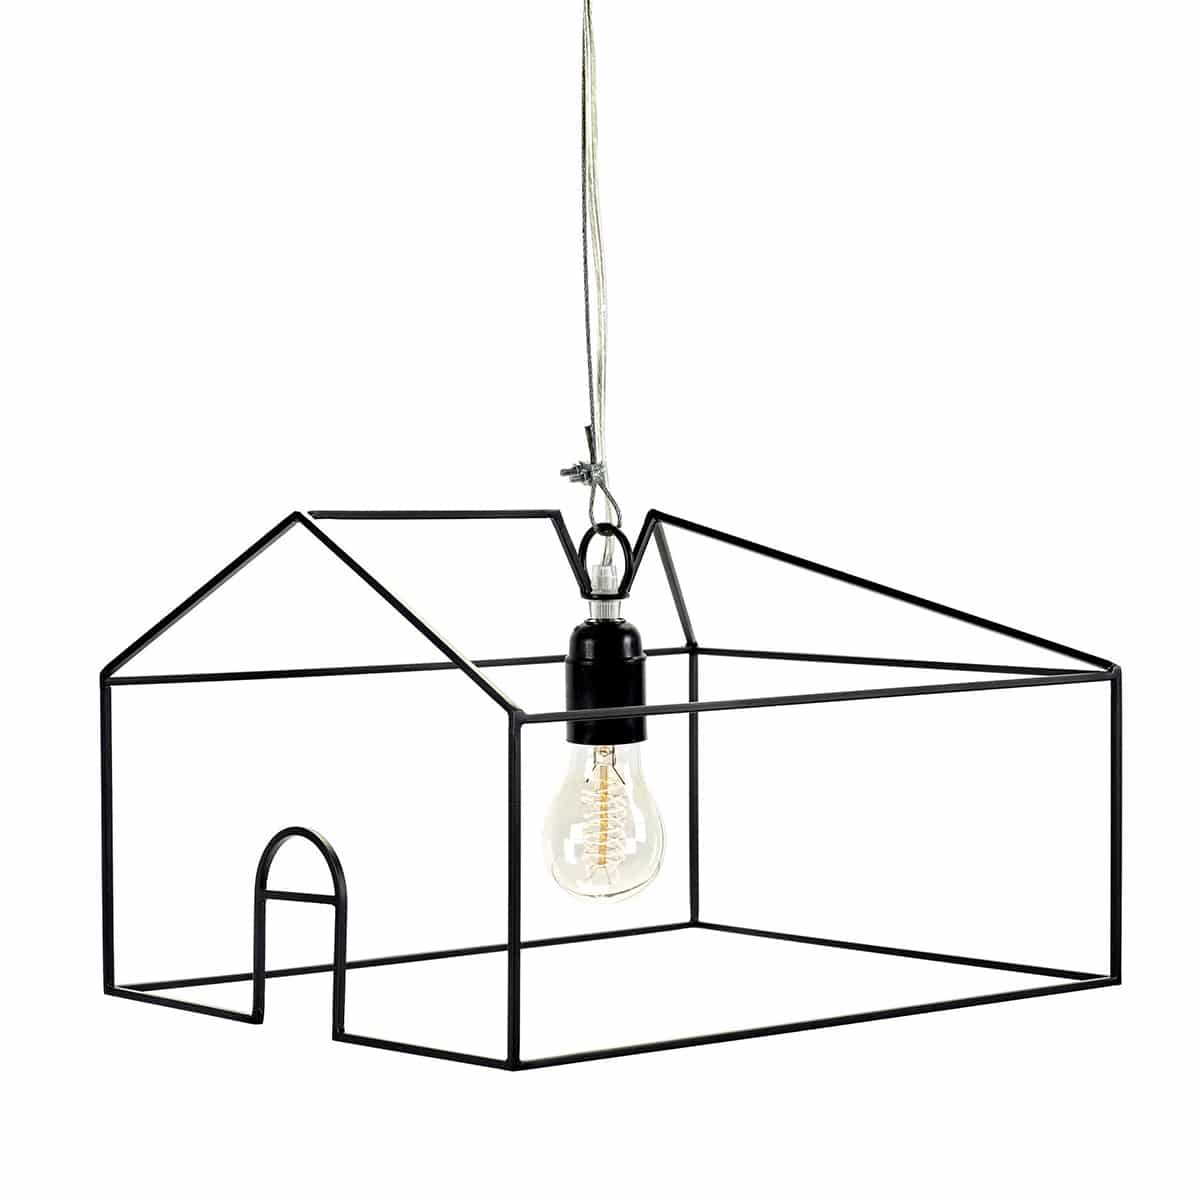 suspension city led kiosque serax noir zeeloft